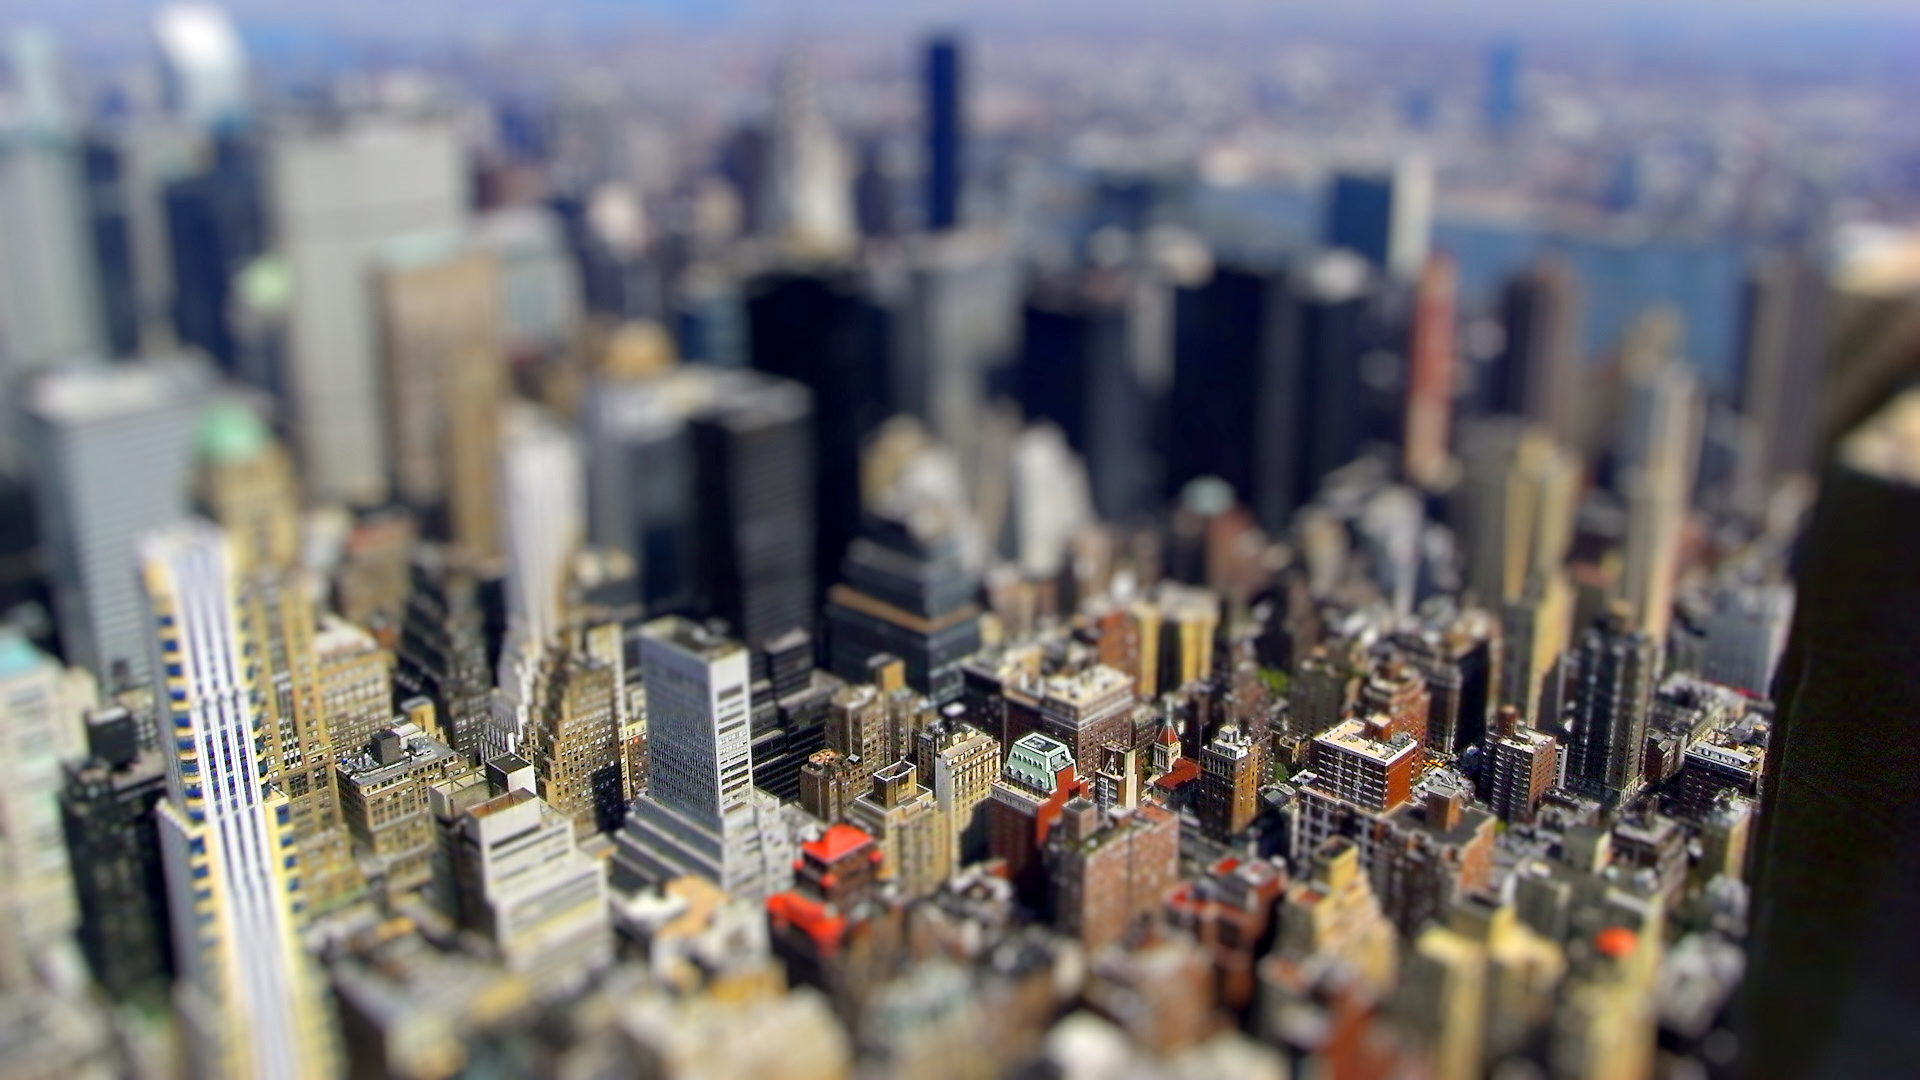 HQ Tilt Shift Wallpapers | File 829.31Kb